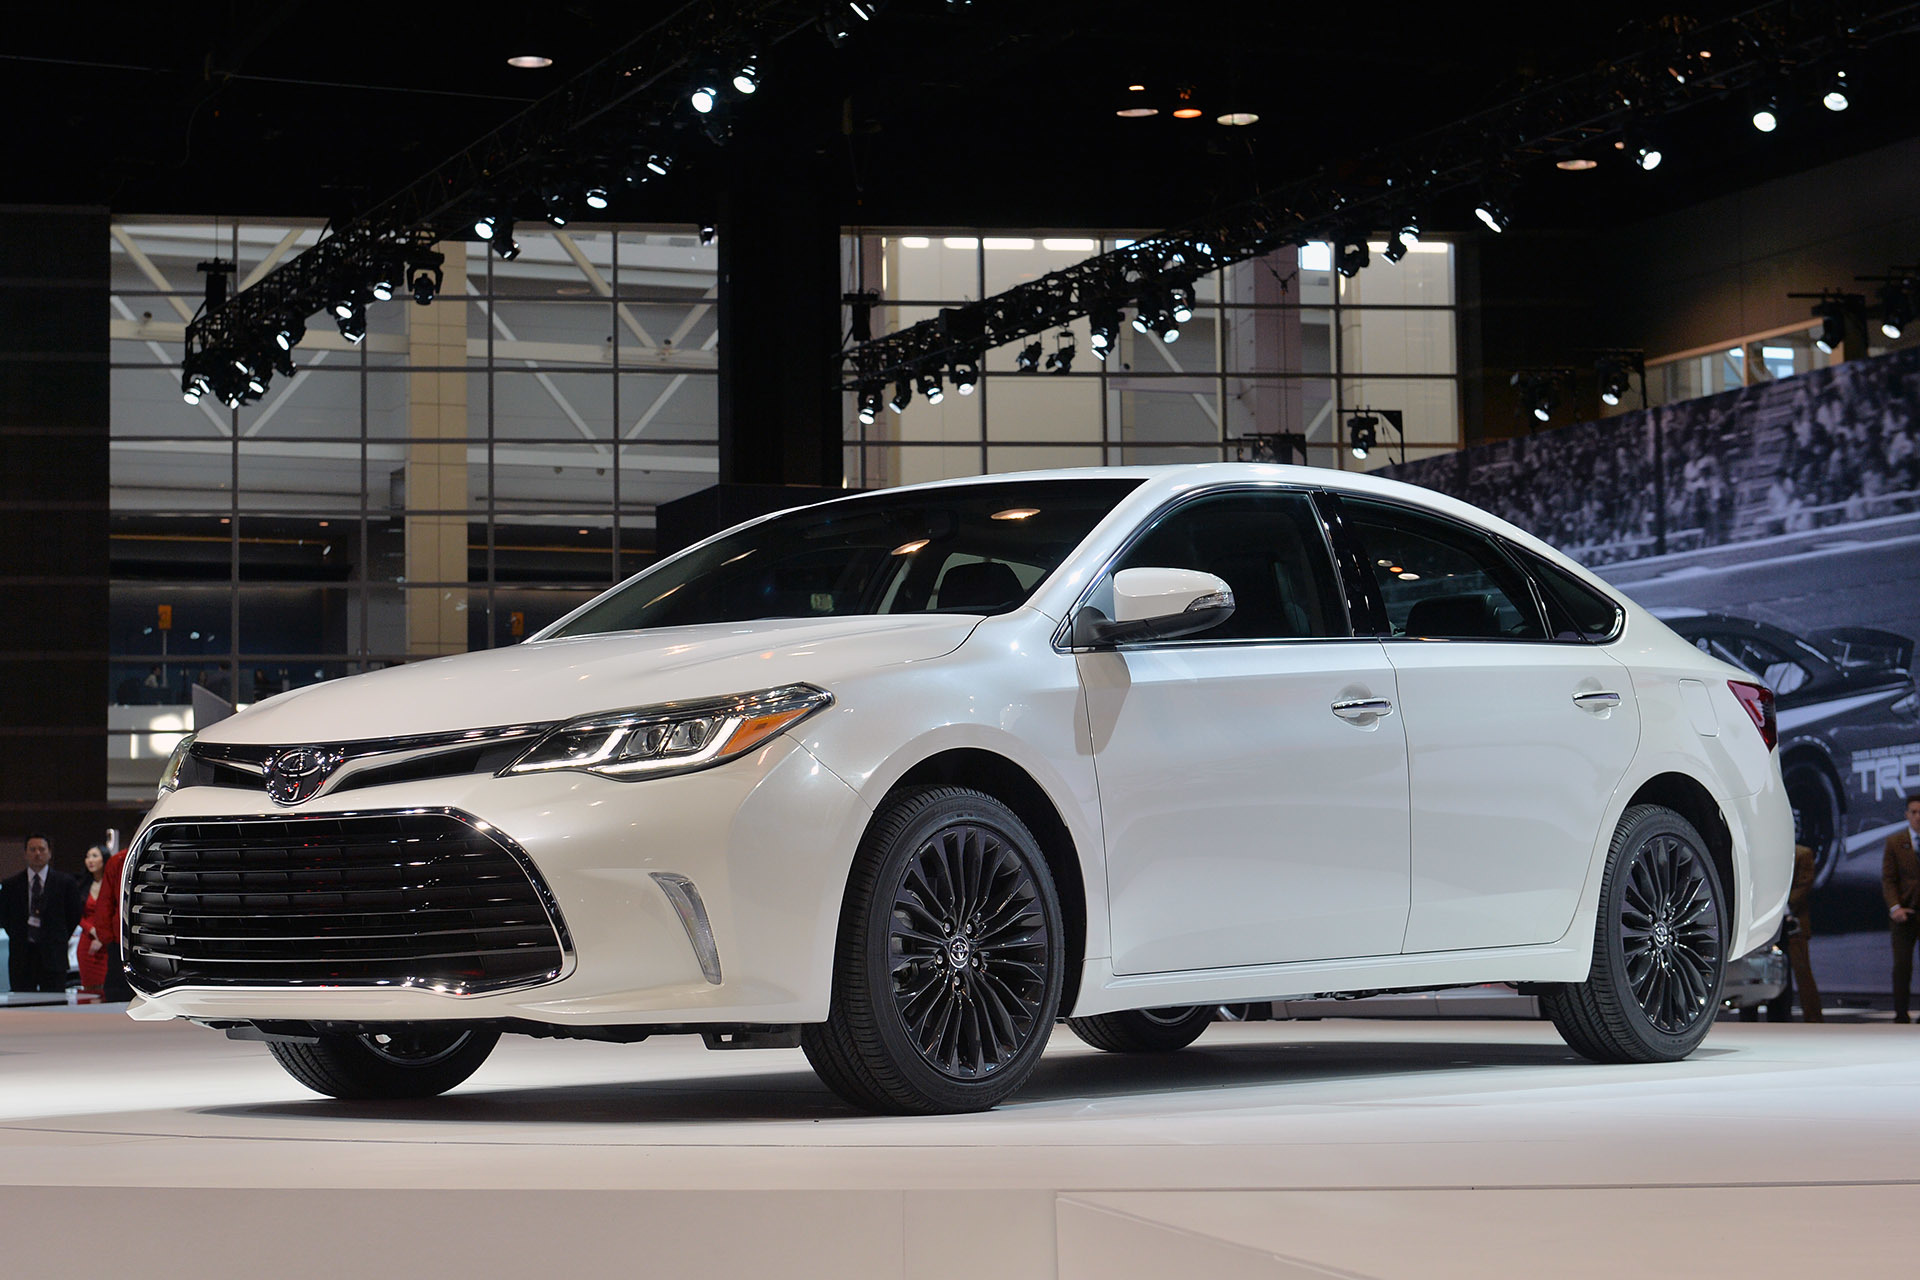 2016 toyota avalon chicago 2015 photo gallery autoblog. Black Bedroom Furniture Sets. Home Design Ideas